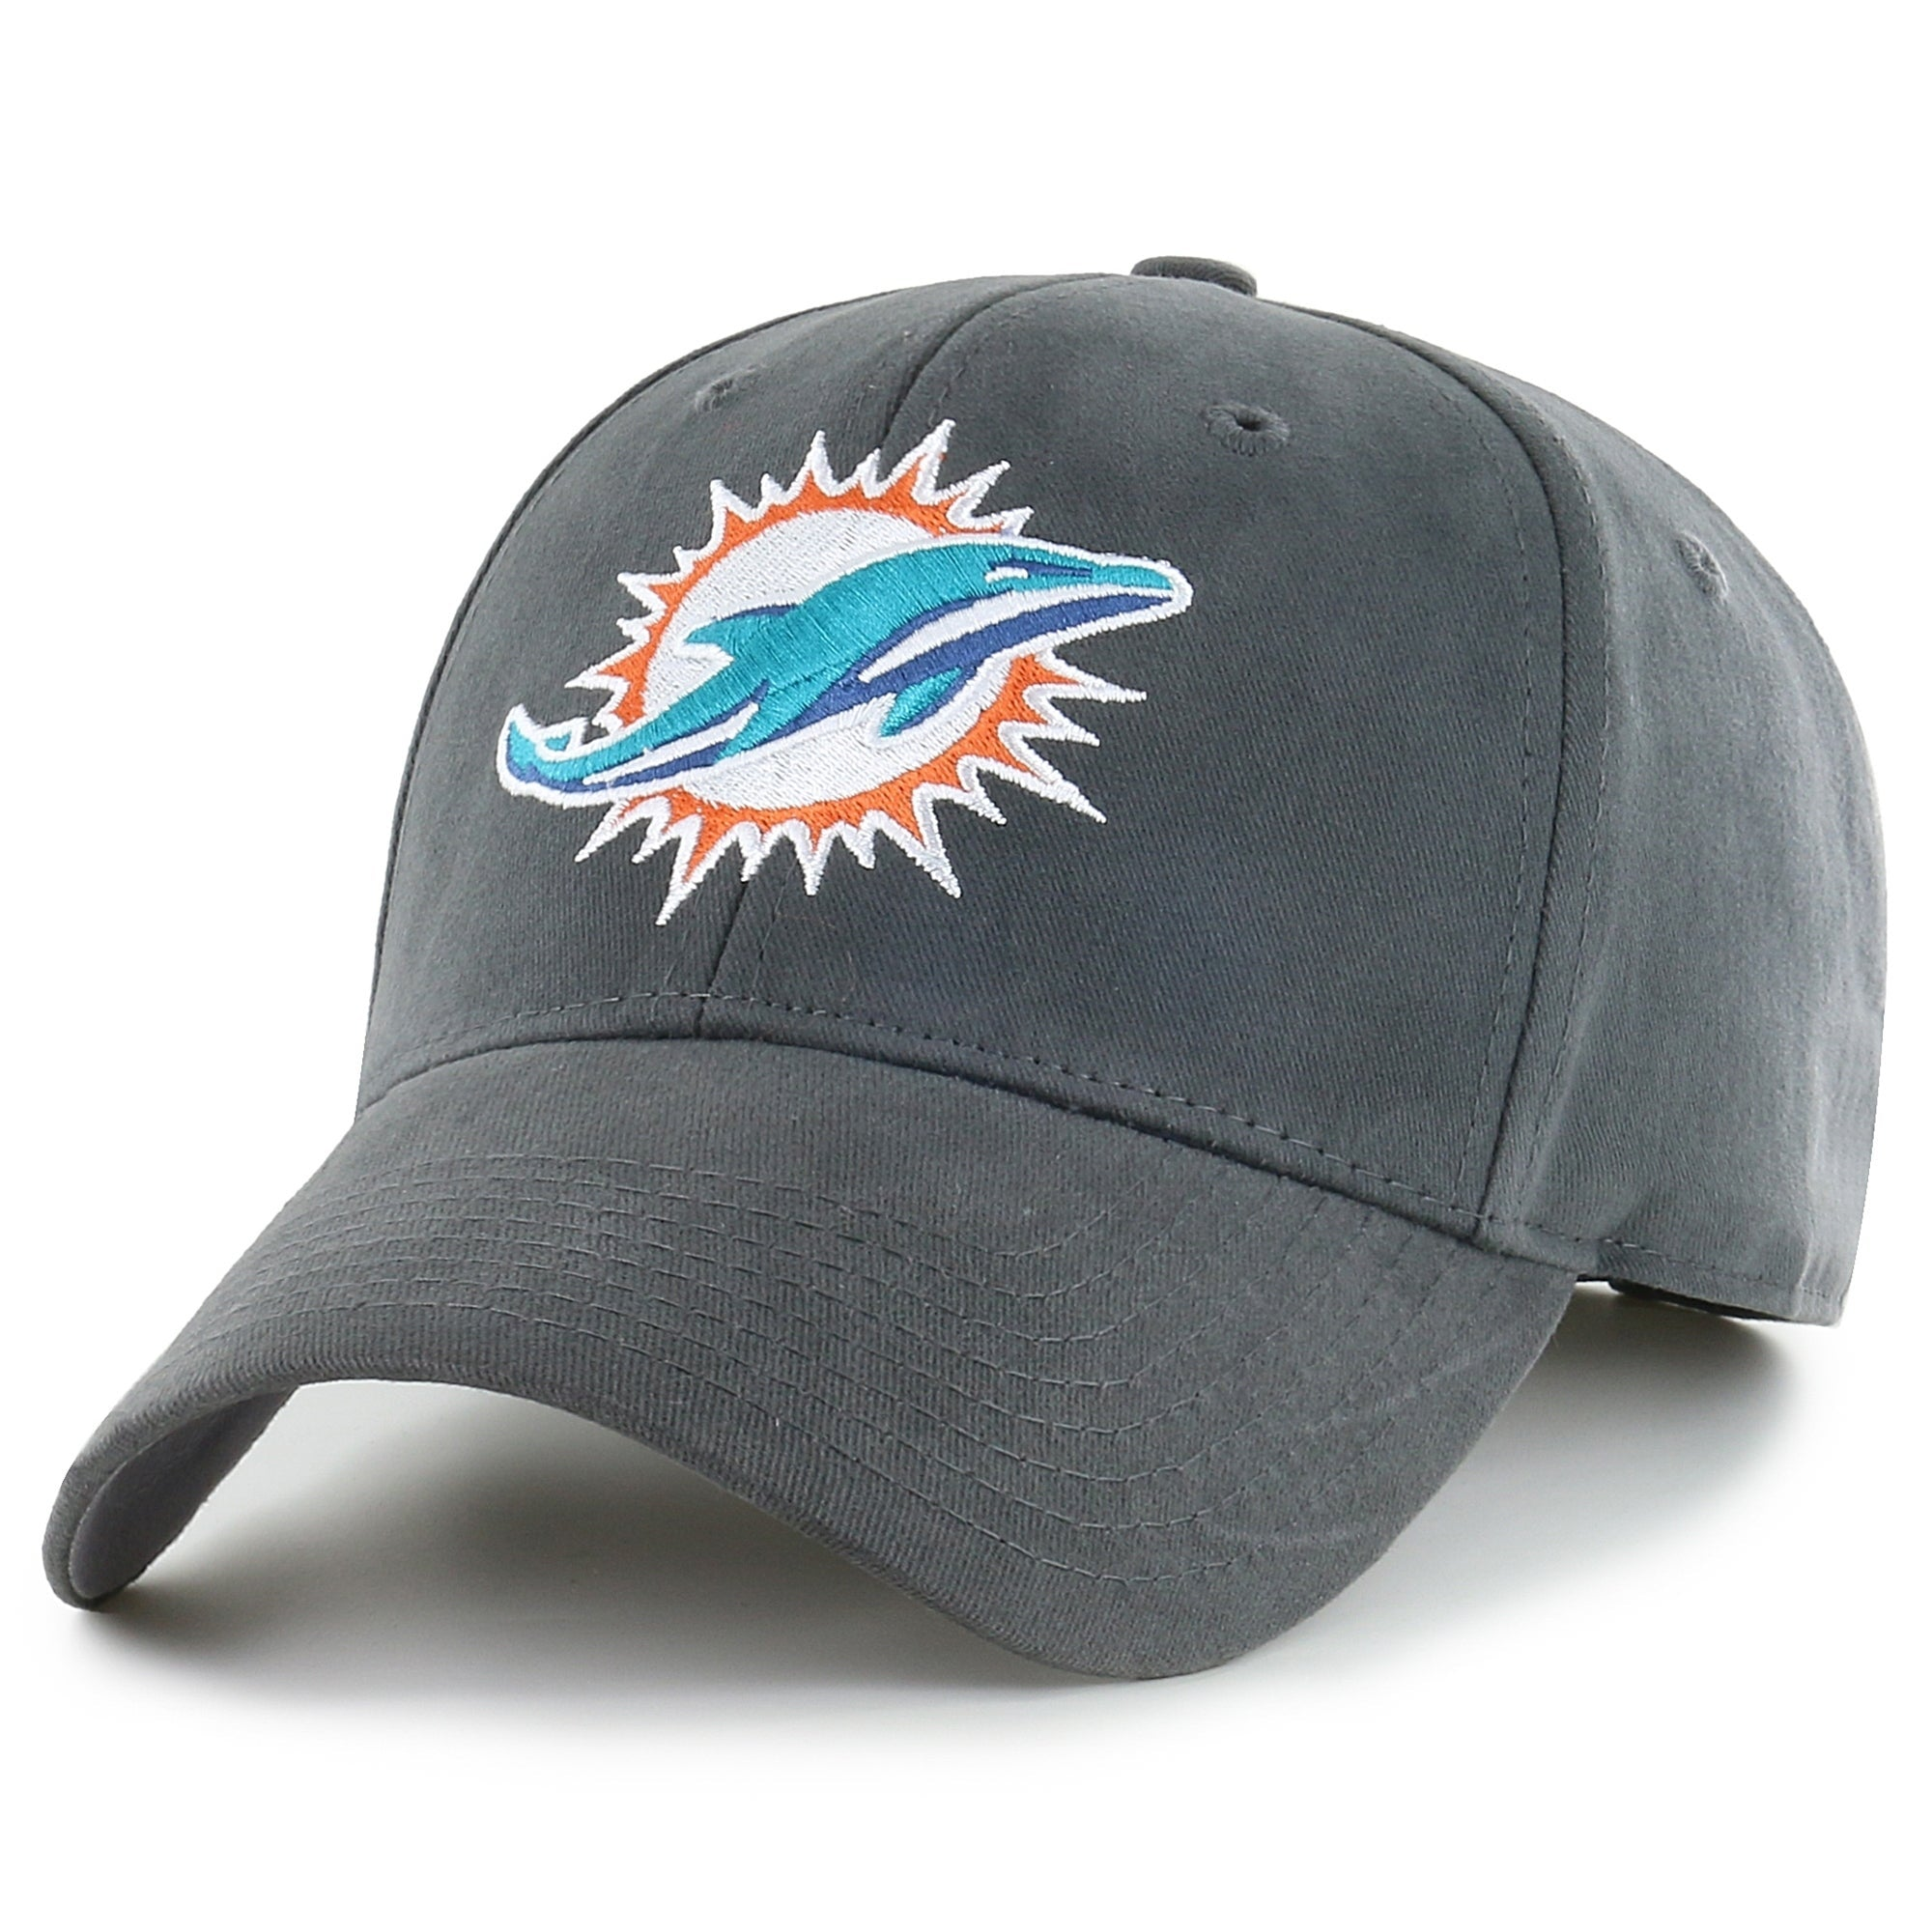 Miami Dolphins Grey Adjustable Hat - Diamond Home USA